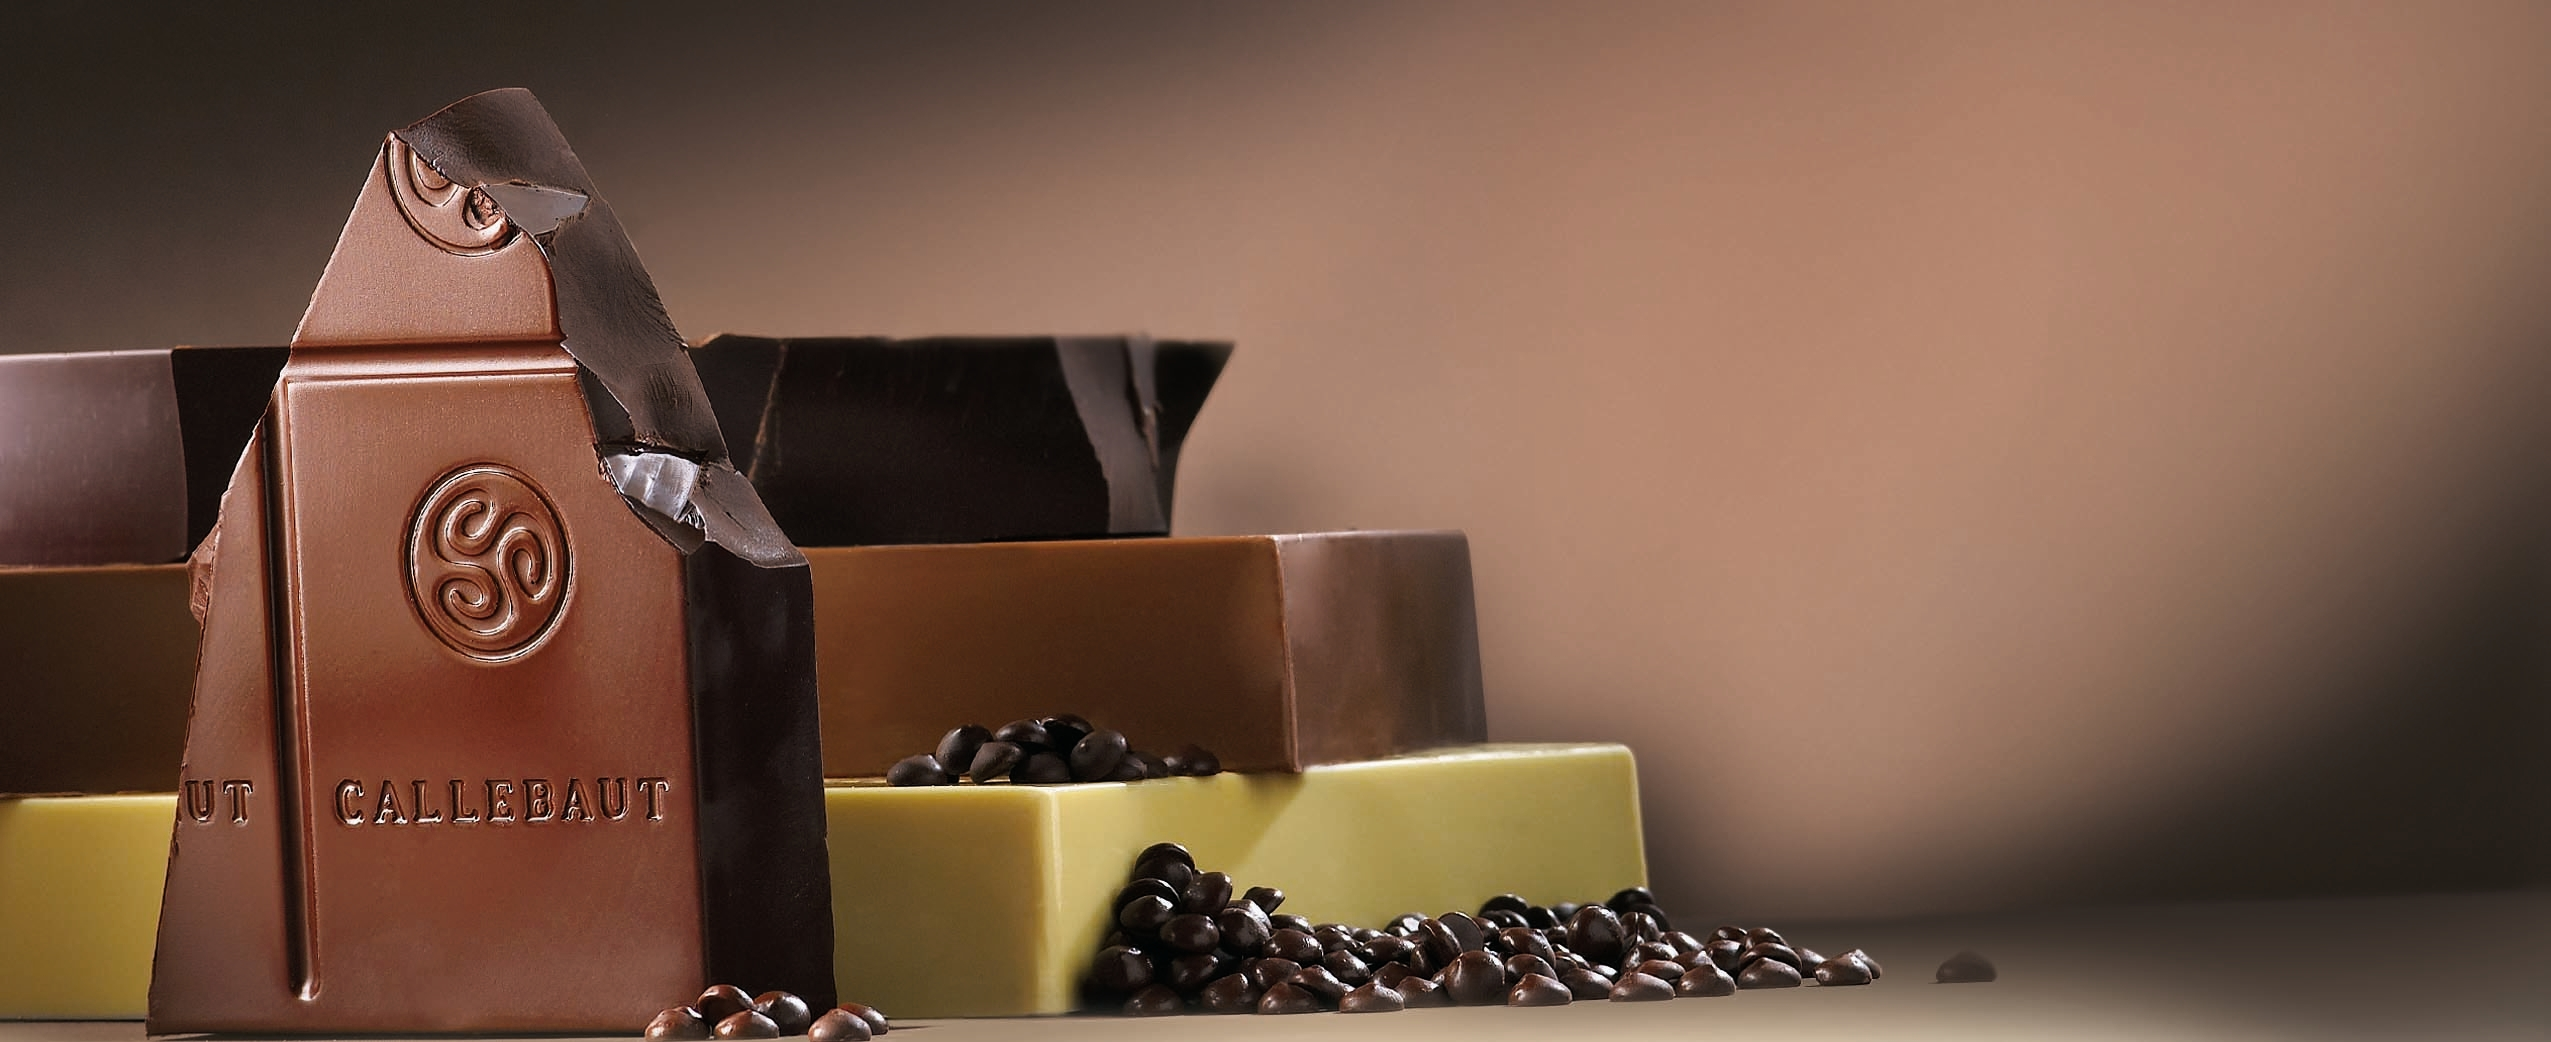 Callebaut | Chocolate by Sparrow